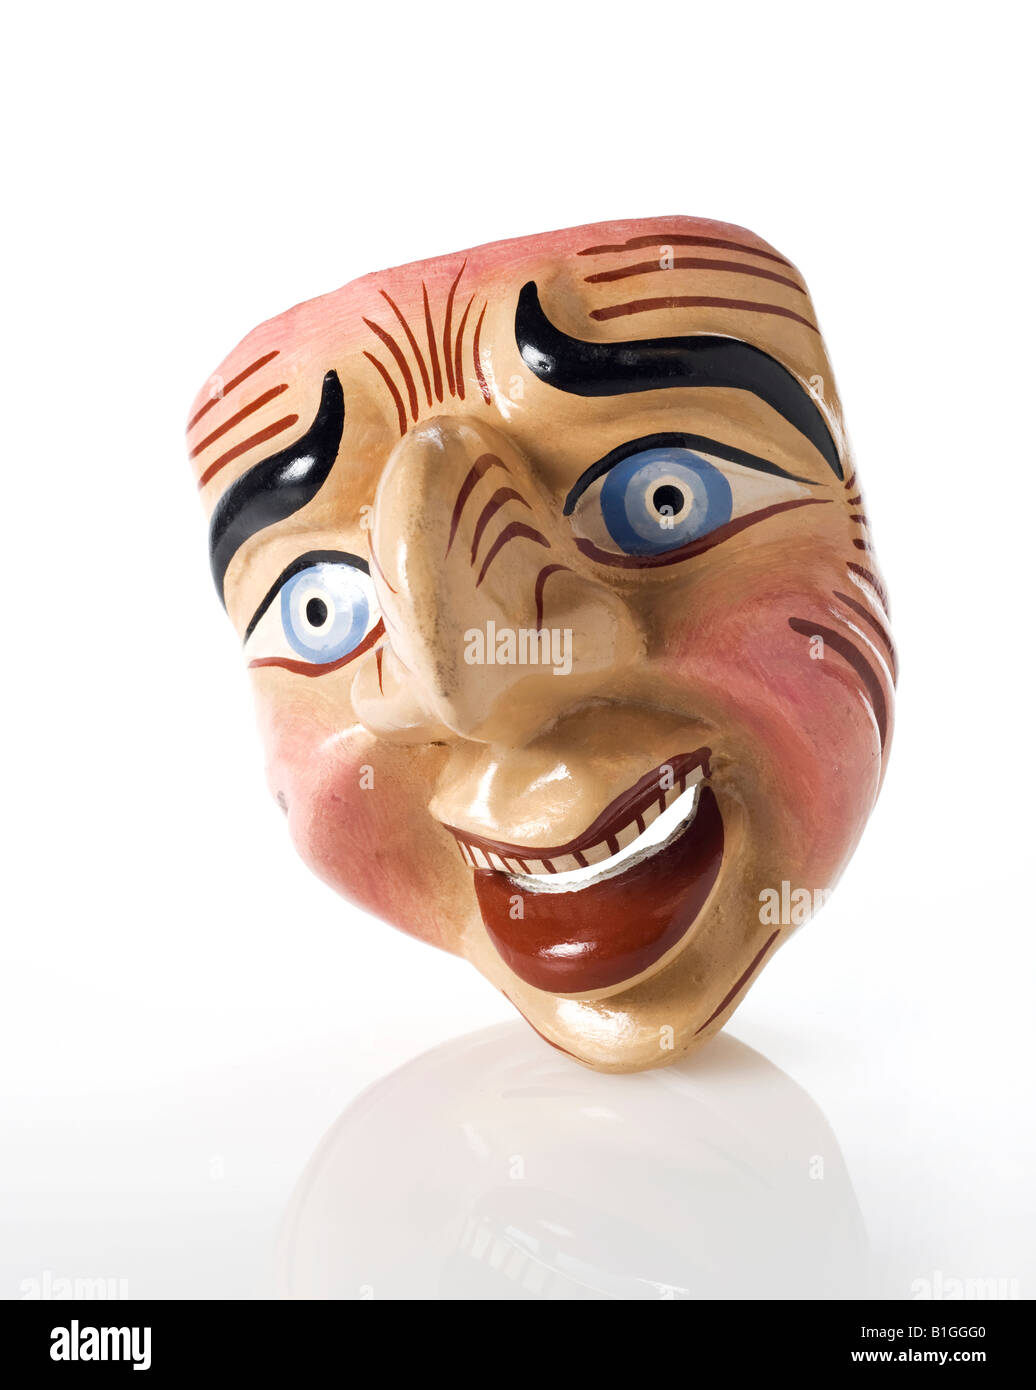 Mask Paper Mache Stock Photos & Mask Paper Mache Stock Images - Alamy